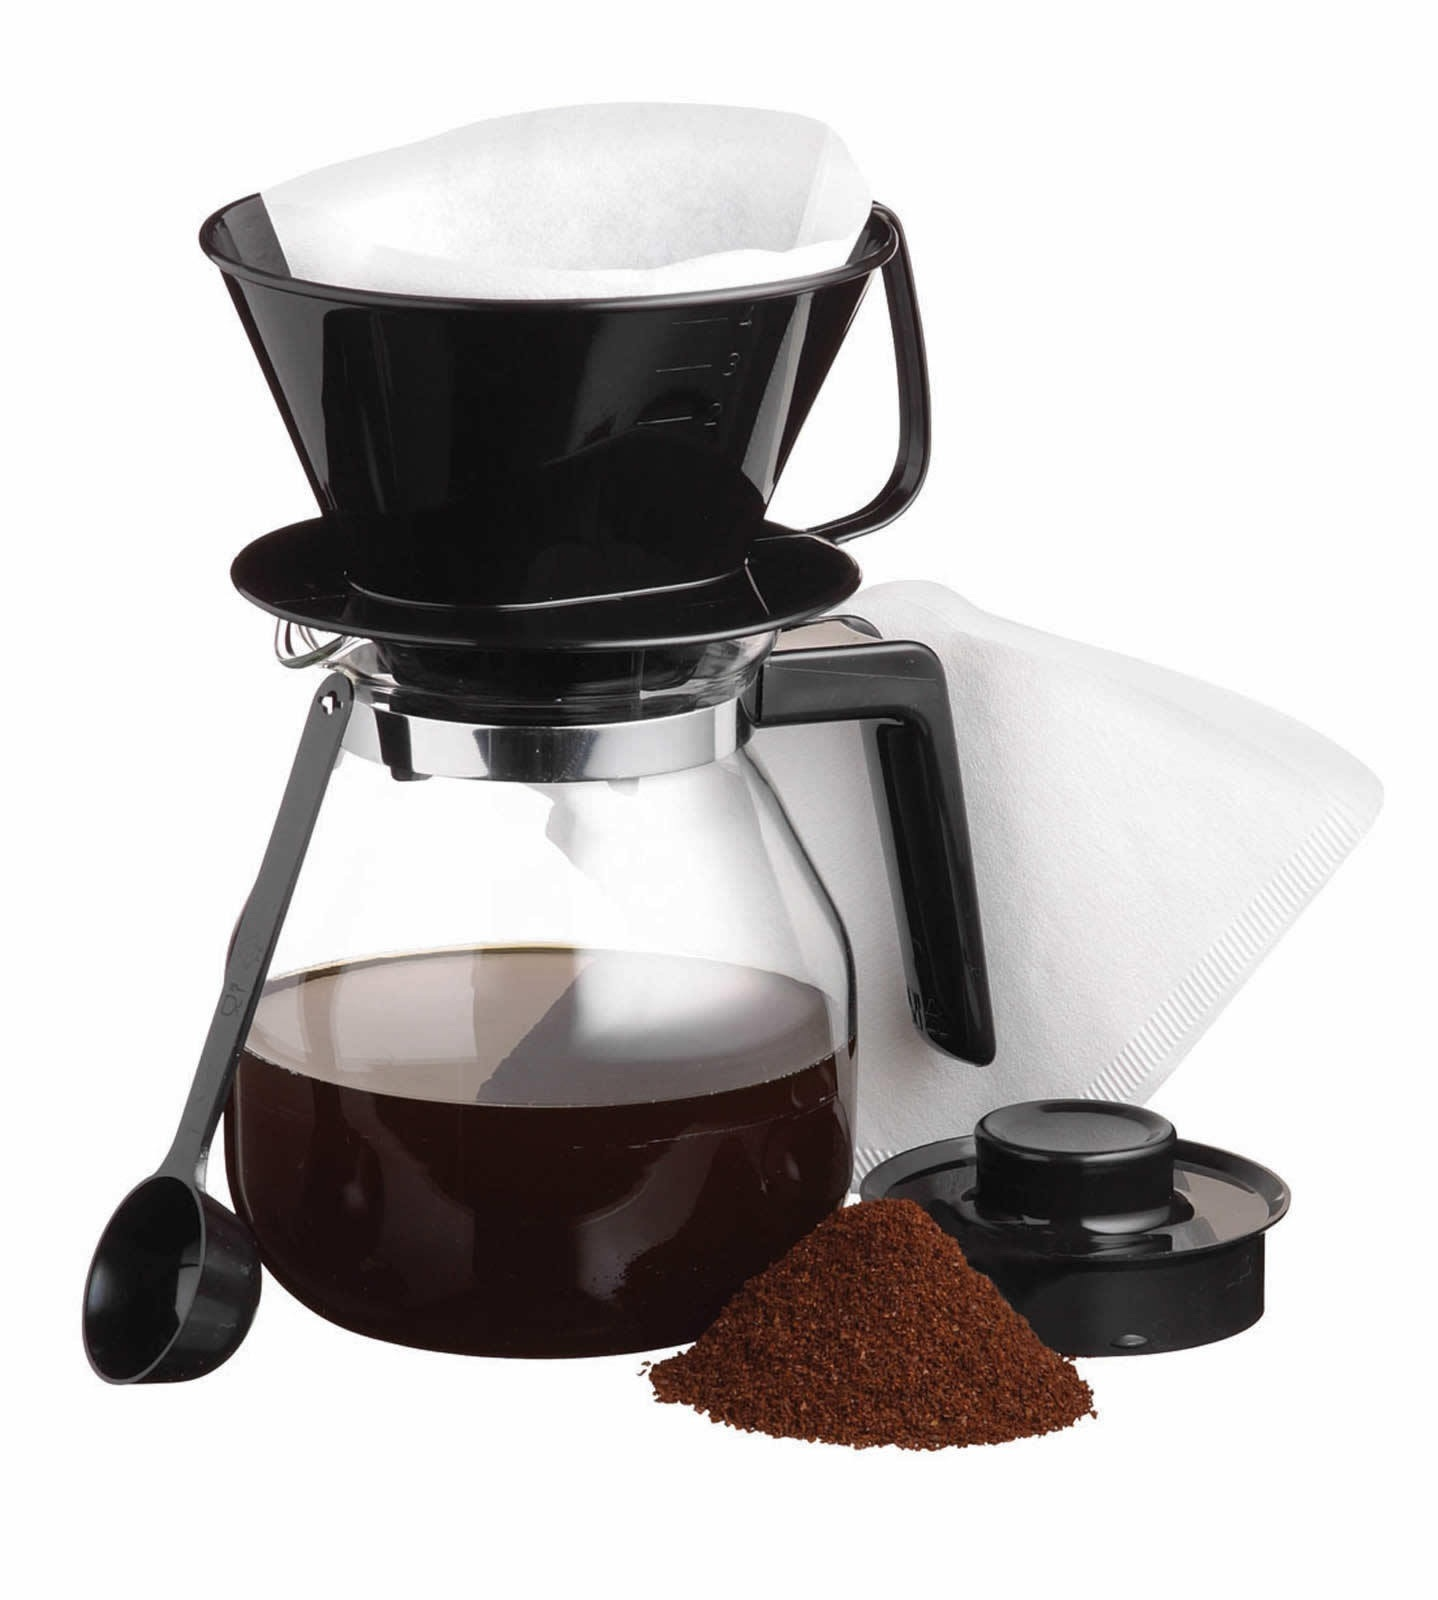 KitchenCraft Coffee Maker Jug Set Cafetieres & Coffee Makers Drinking: Tea & Coffee Eating ...